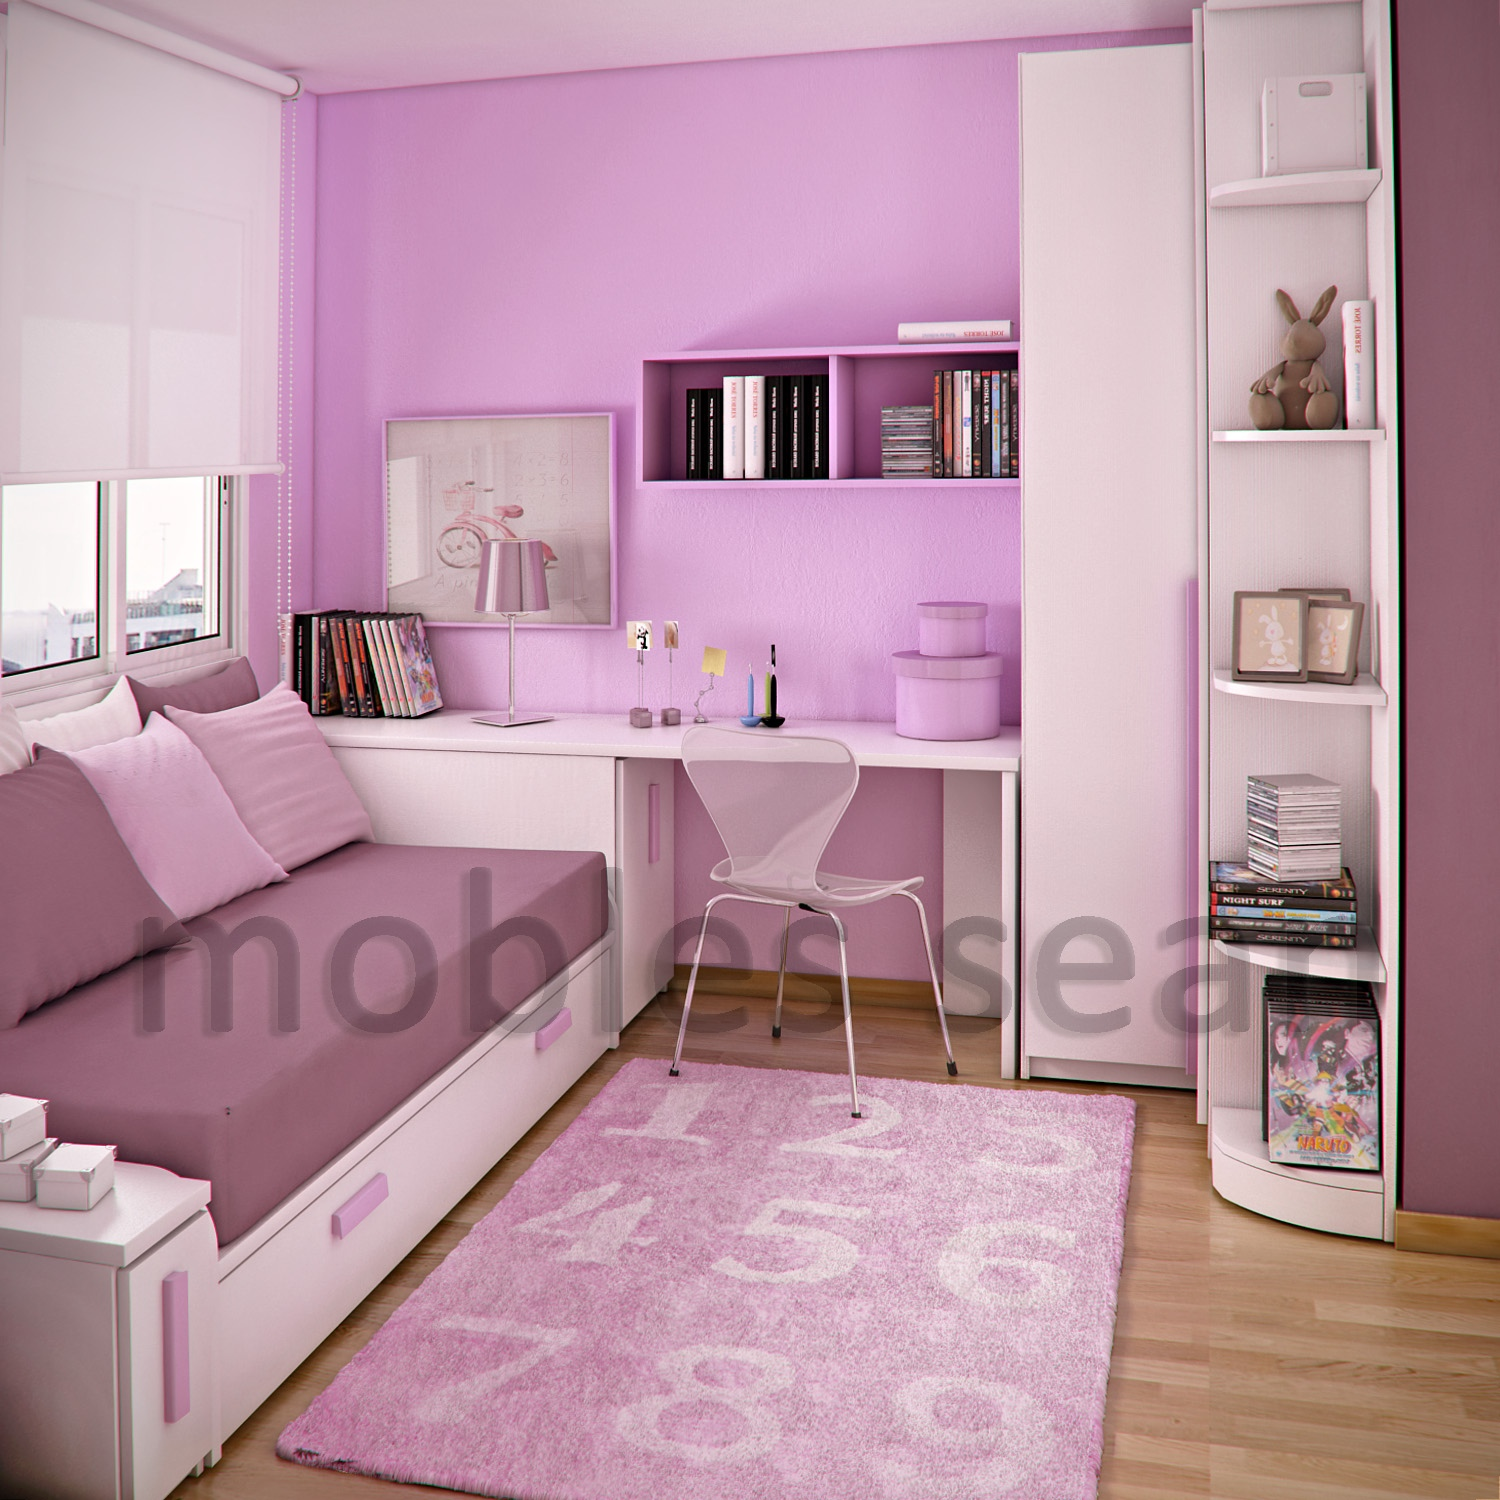 Bedroom Ideas For Small Rooms space-saving designs for small kids rooms